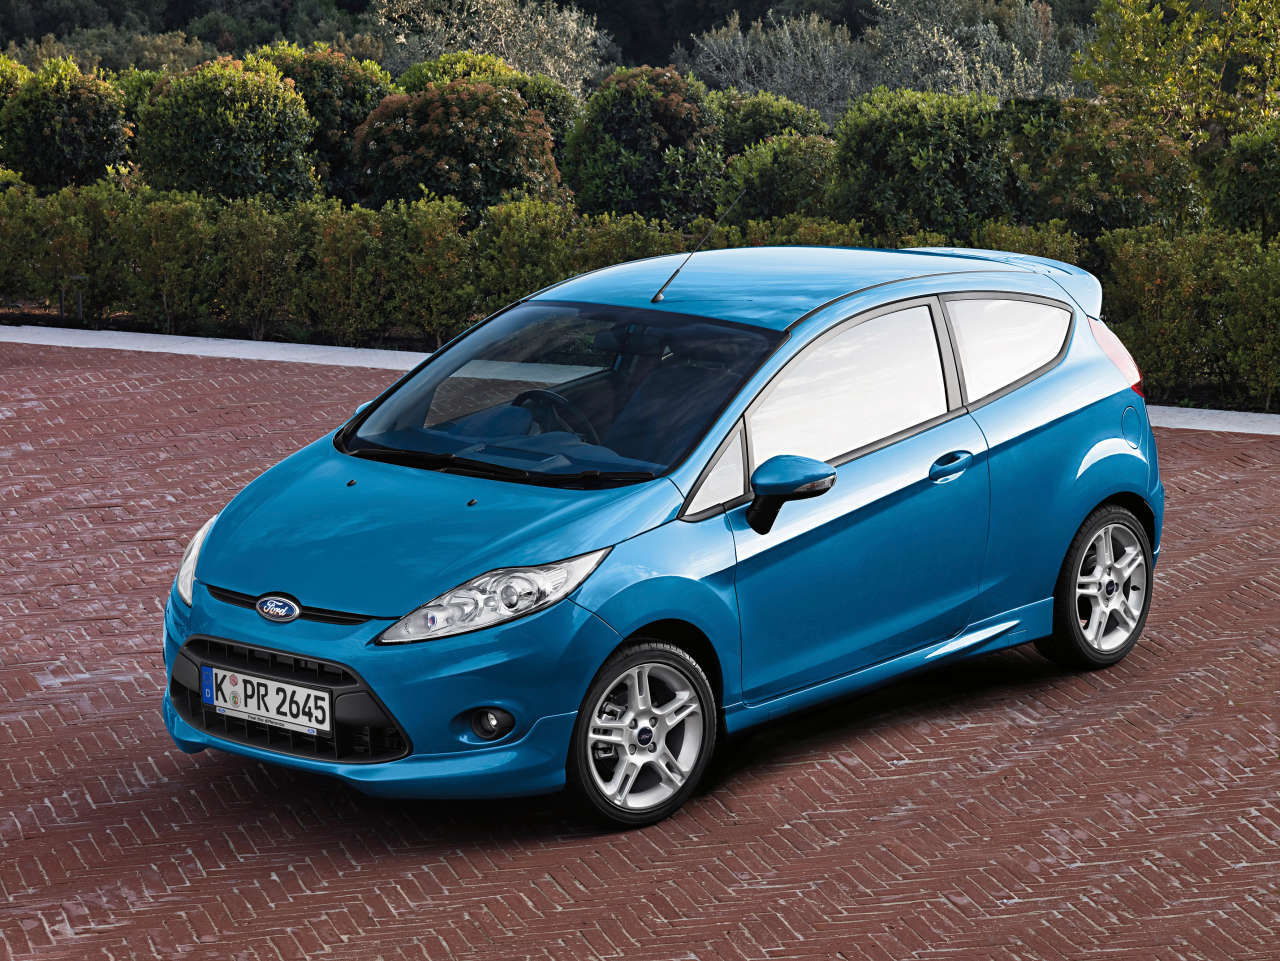 Ford Fiesta Sport image #13